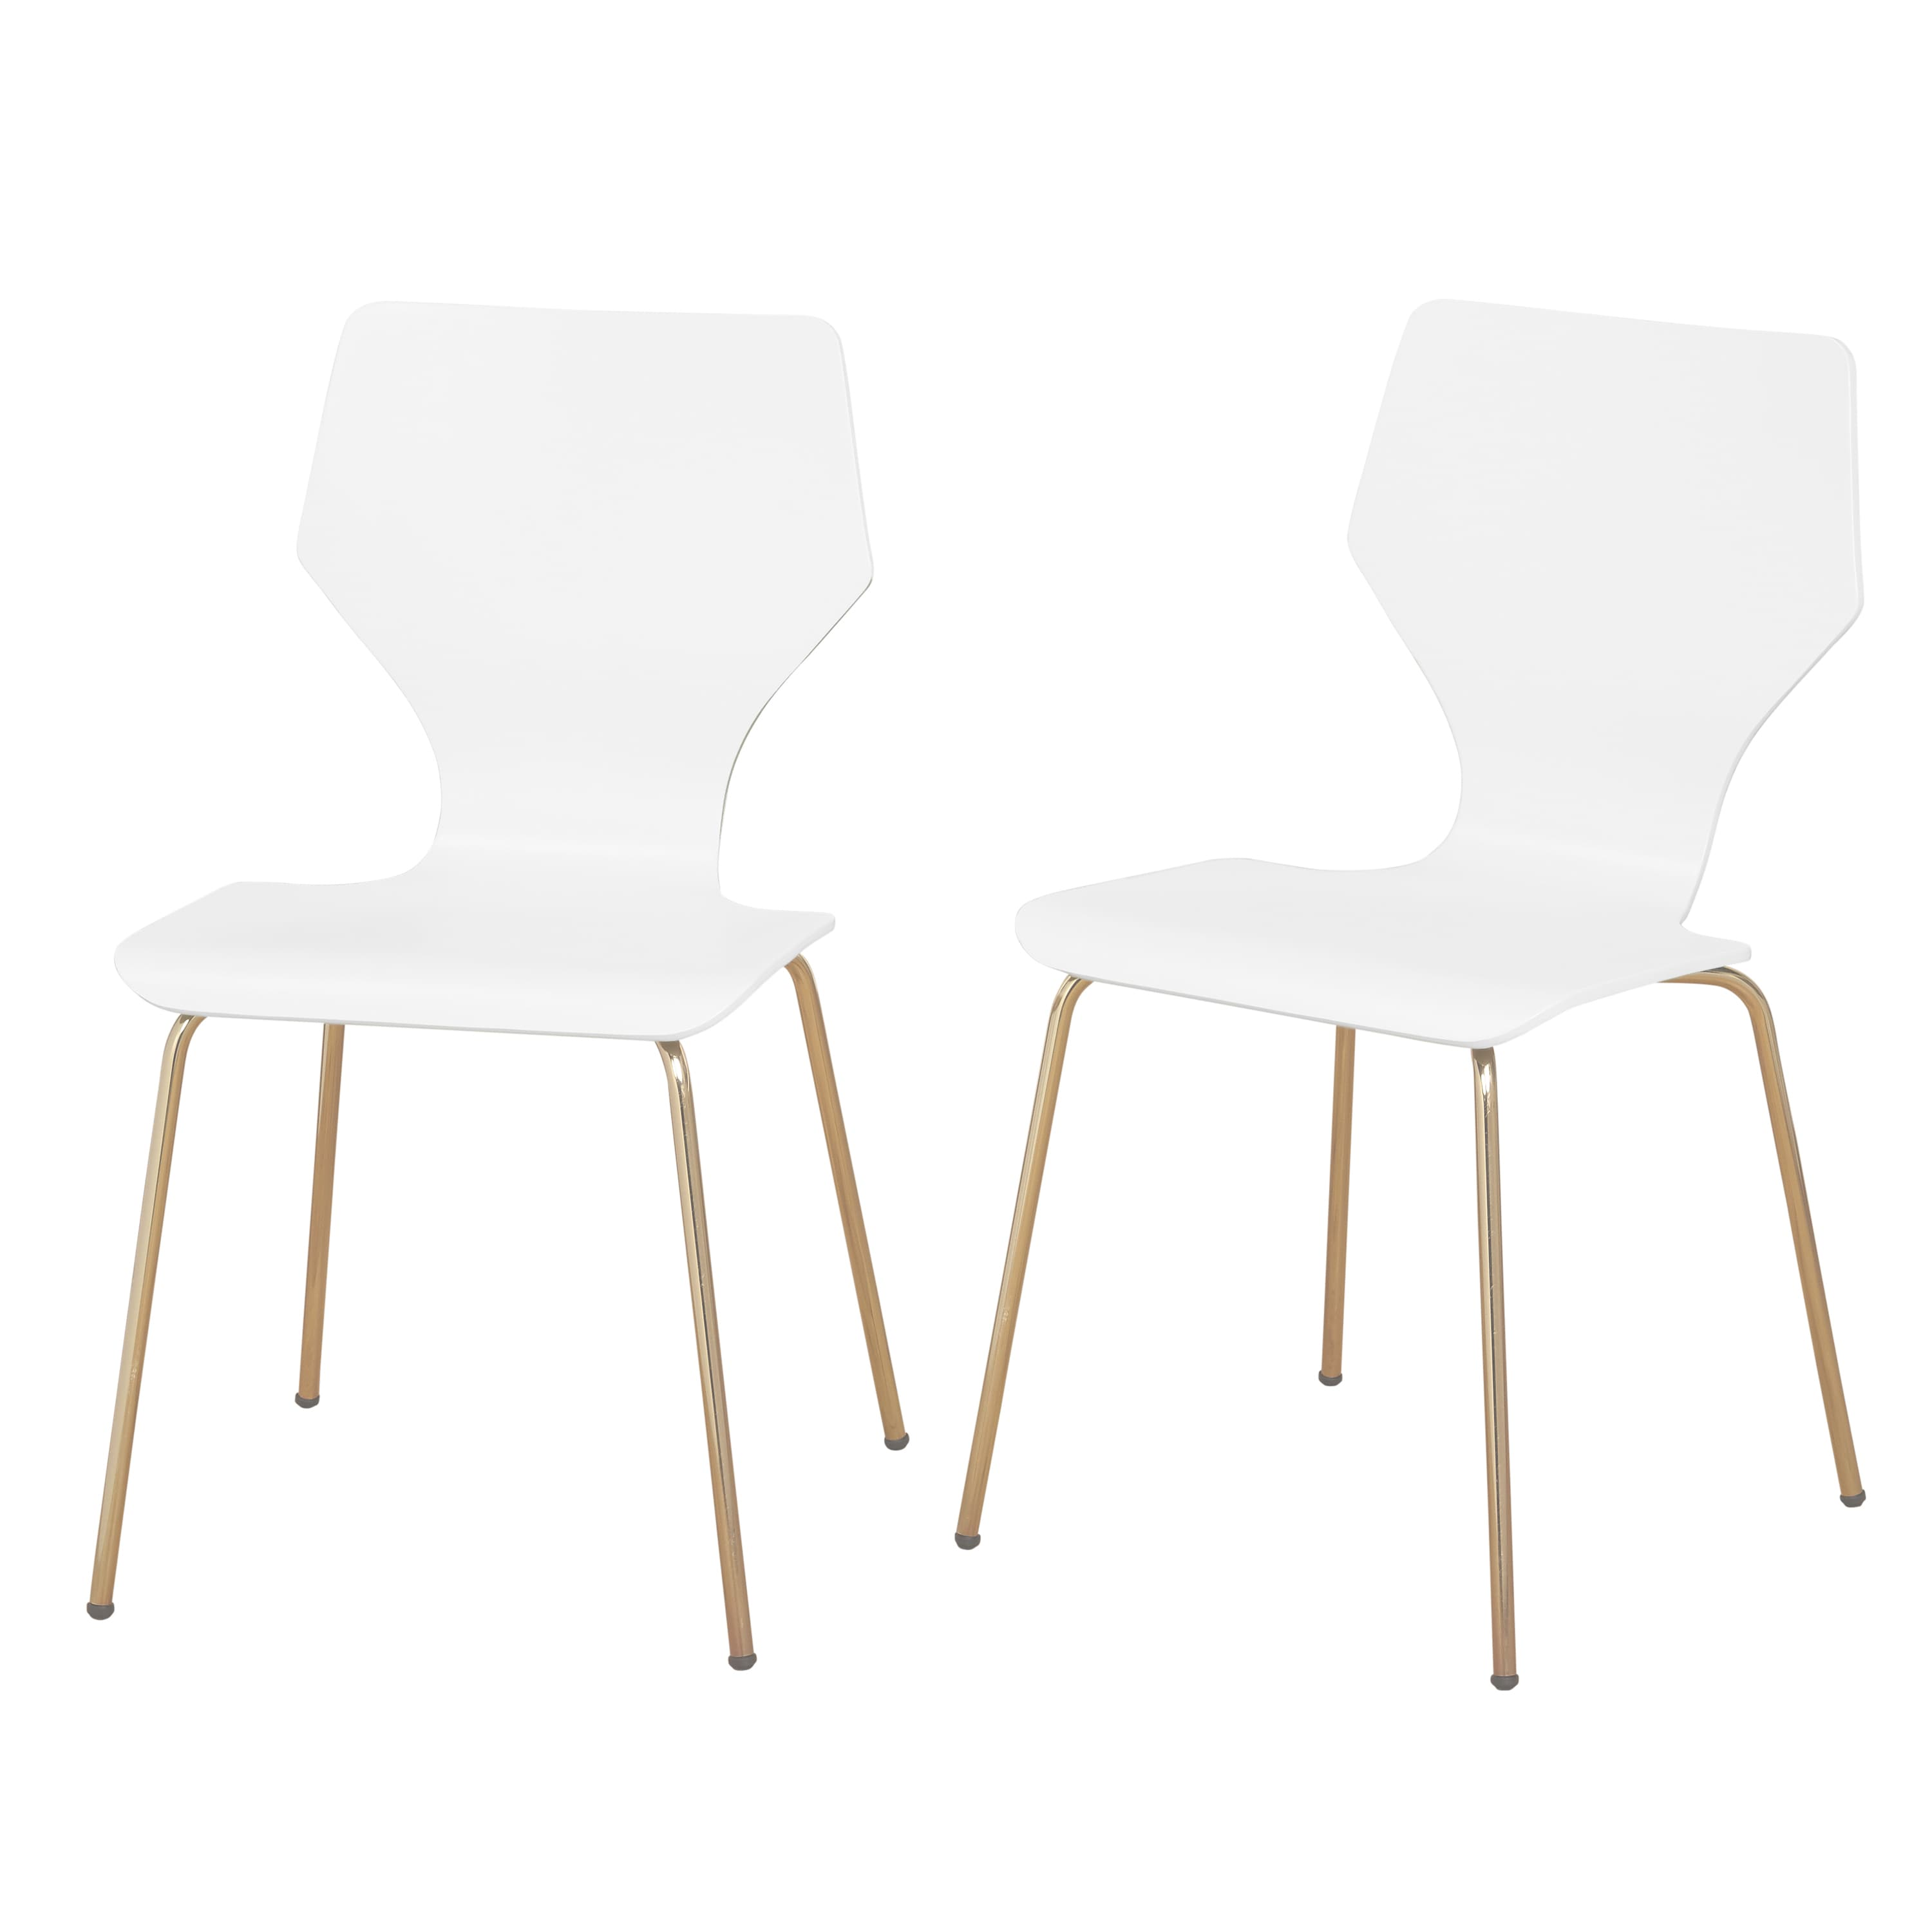 Pleasant Angelo Home Dining Chairs Enna Bentwood Metal Set Of 2 White Machost Co Dining Chair Design Ideas Machostcouk